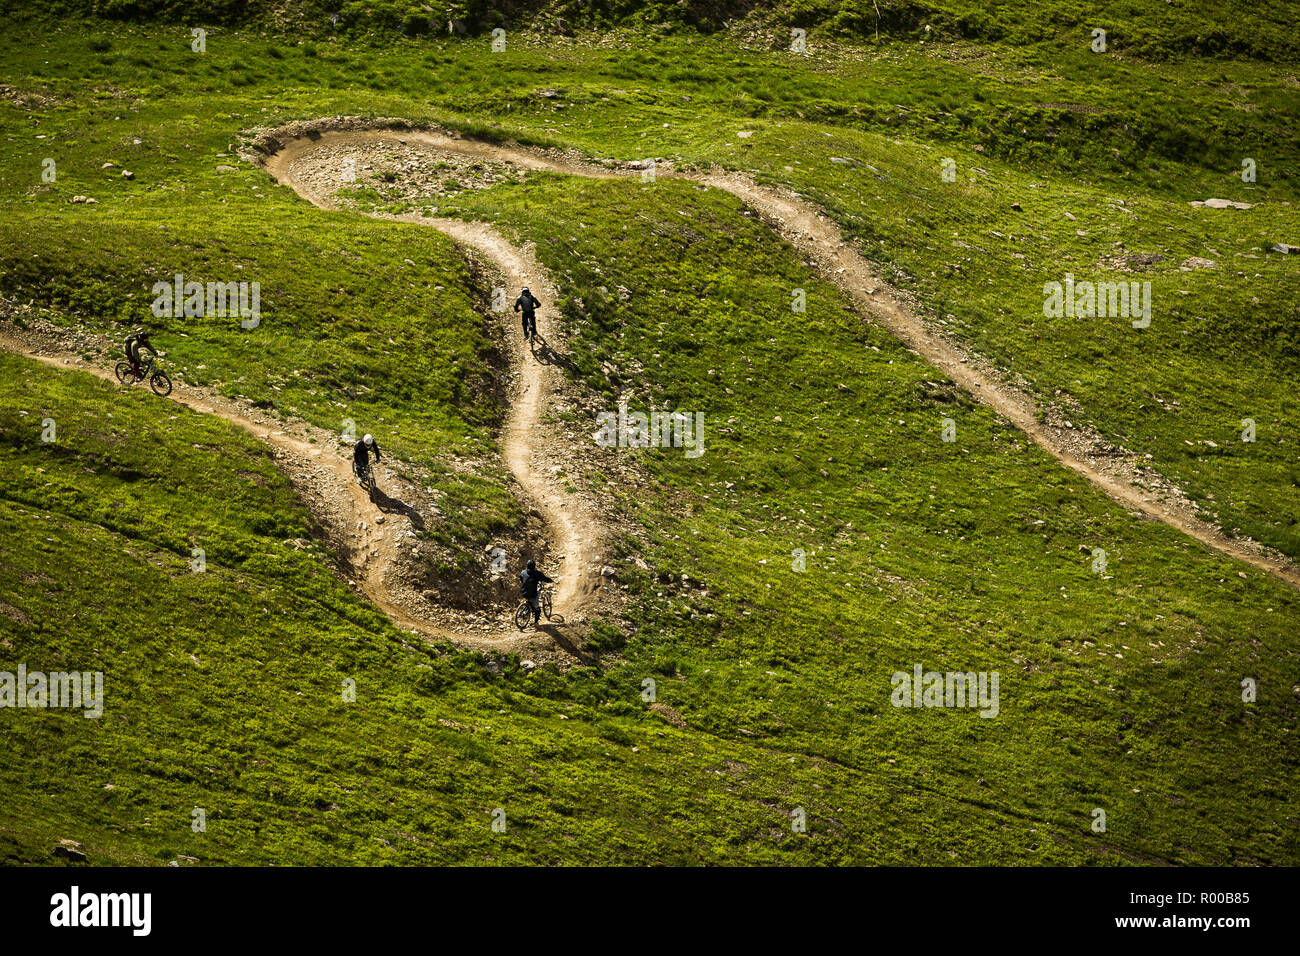 Mountain Bikers on a singletrack with berms - Stock Image